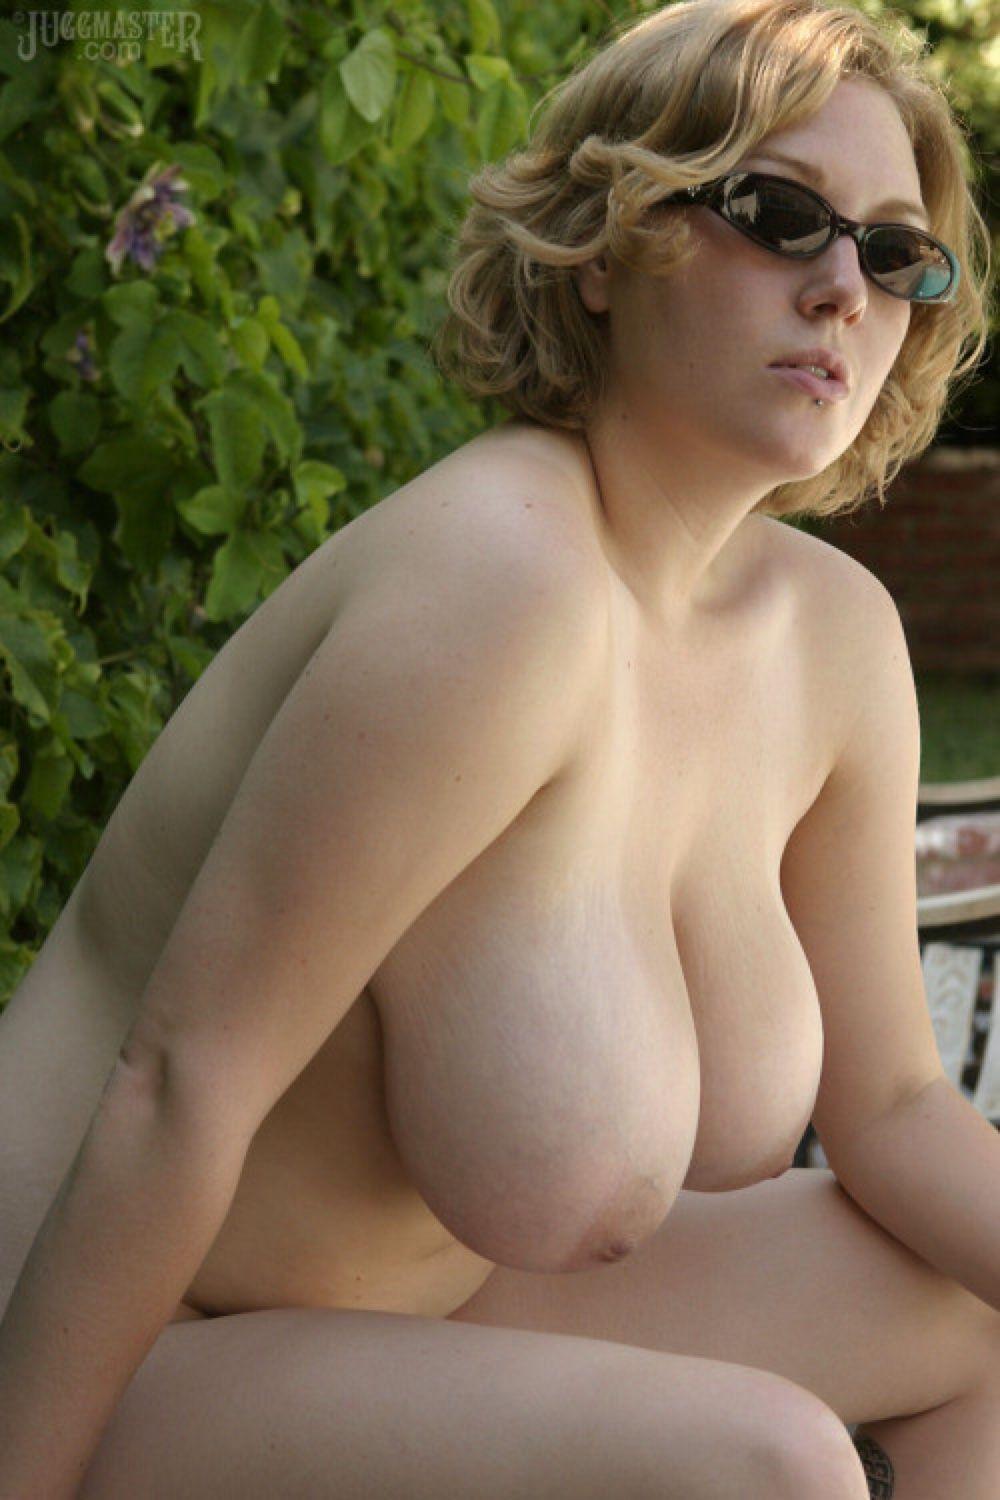 Mature english women tubes-3632